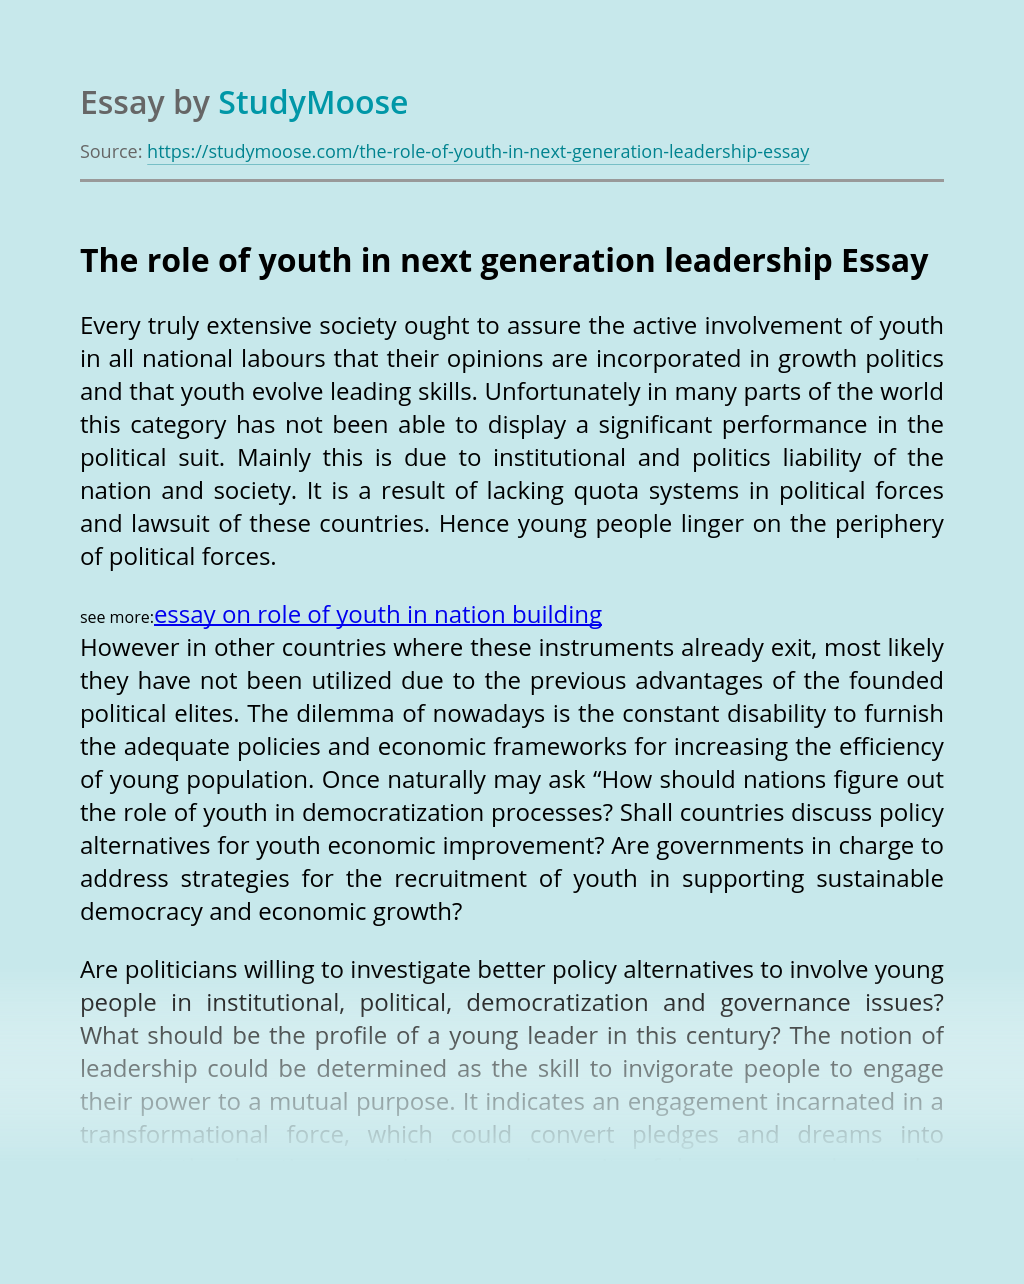 The role of youth in next generation leadership